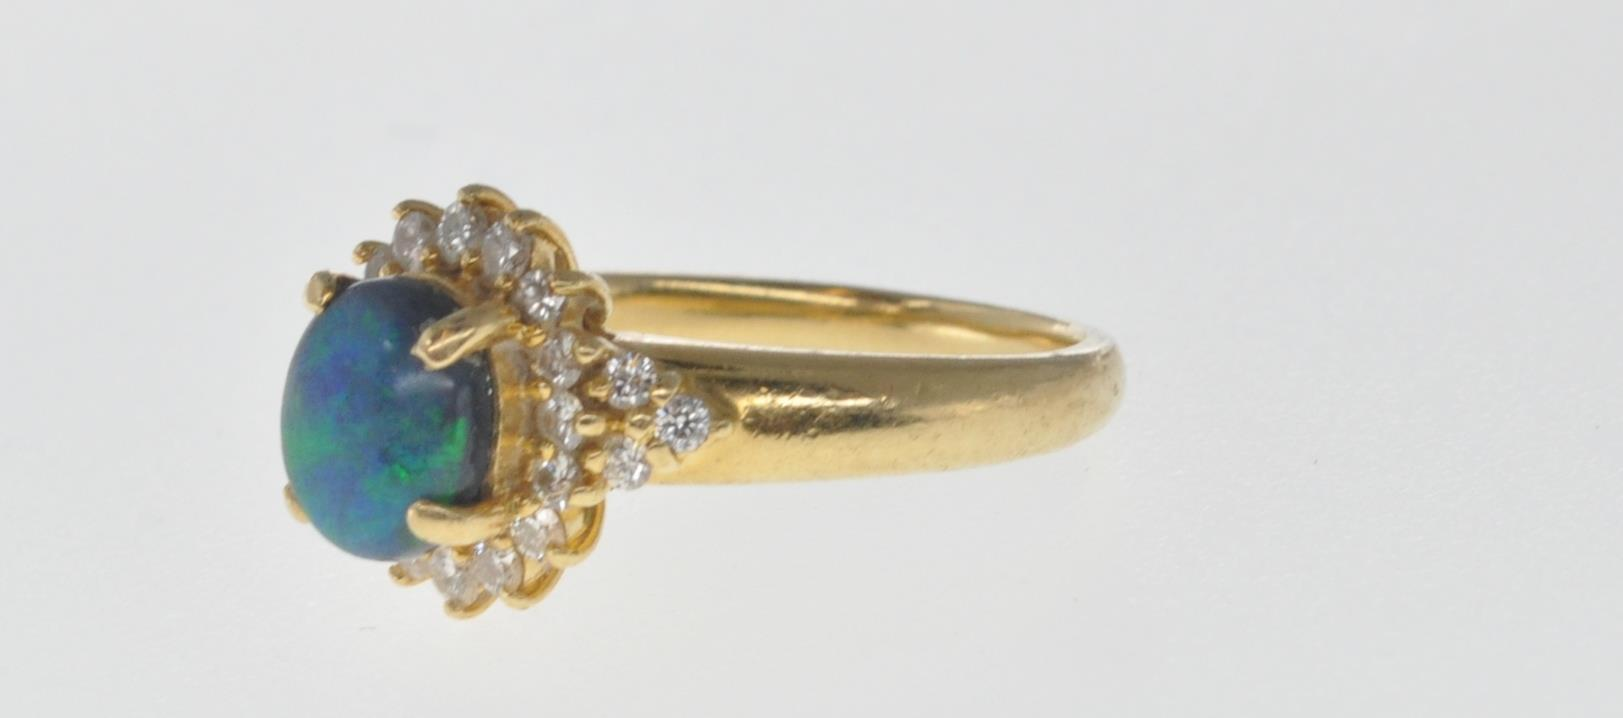 18CT GOLD BLACK OPAL AND DIAMOND RING - Image 4 of 7